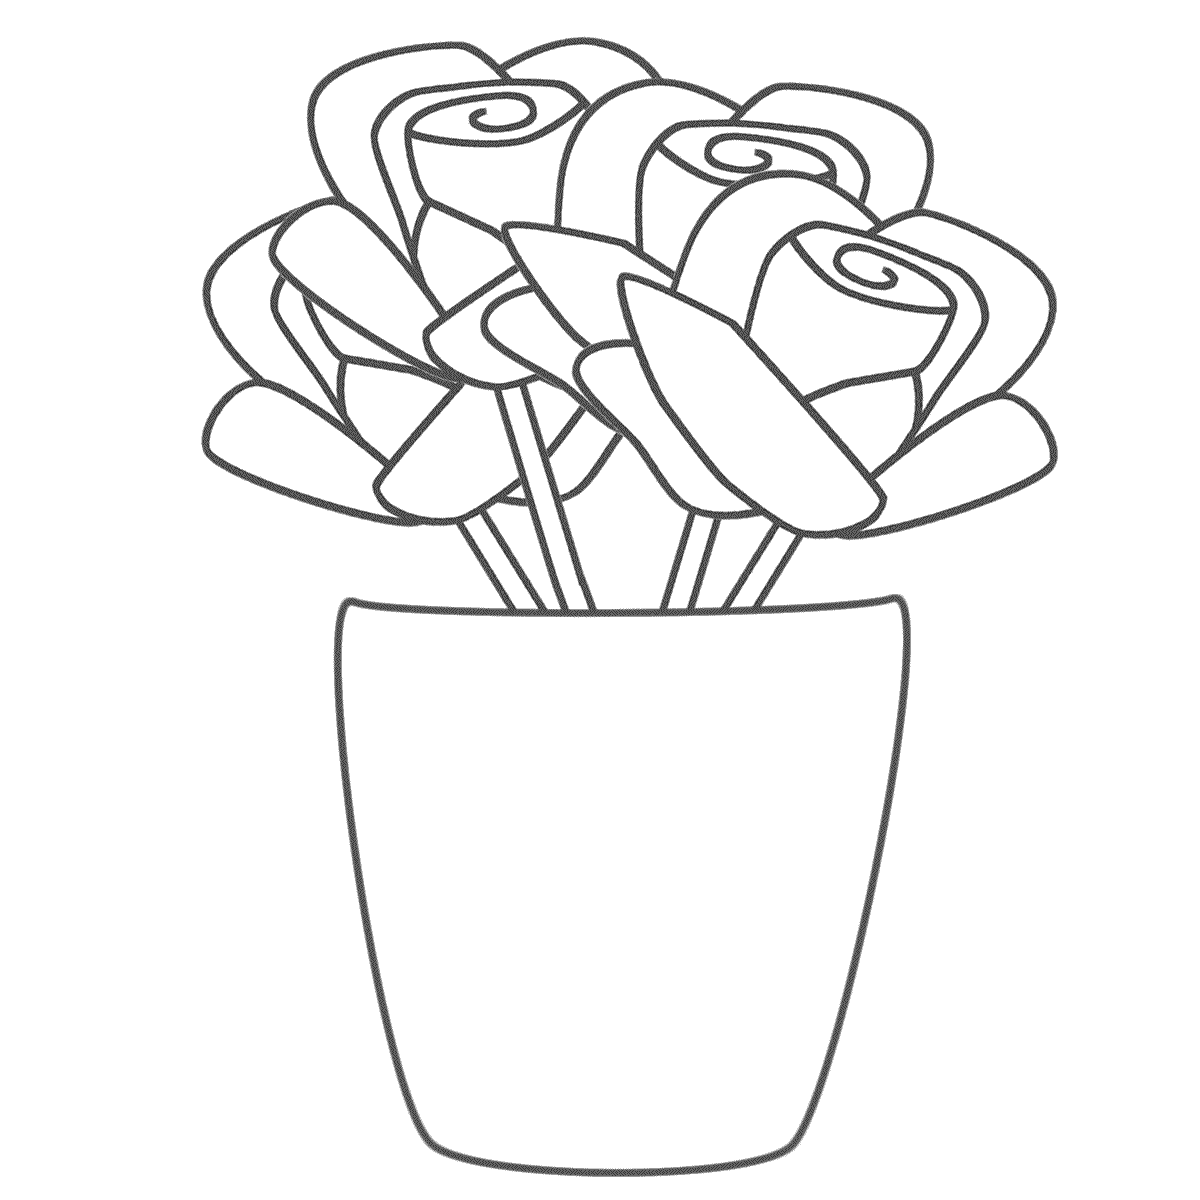 Flower Vase Coloring Page - Coloring Page